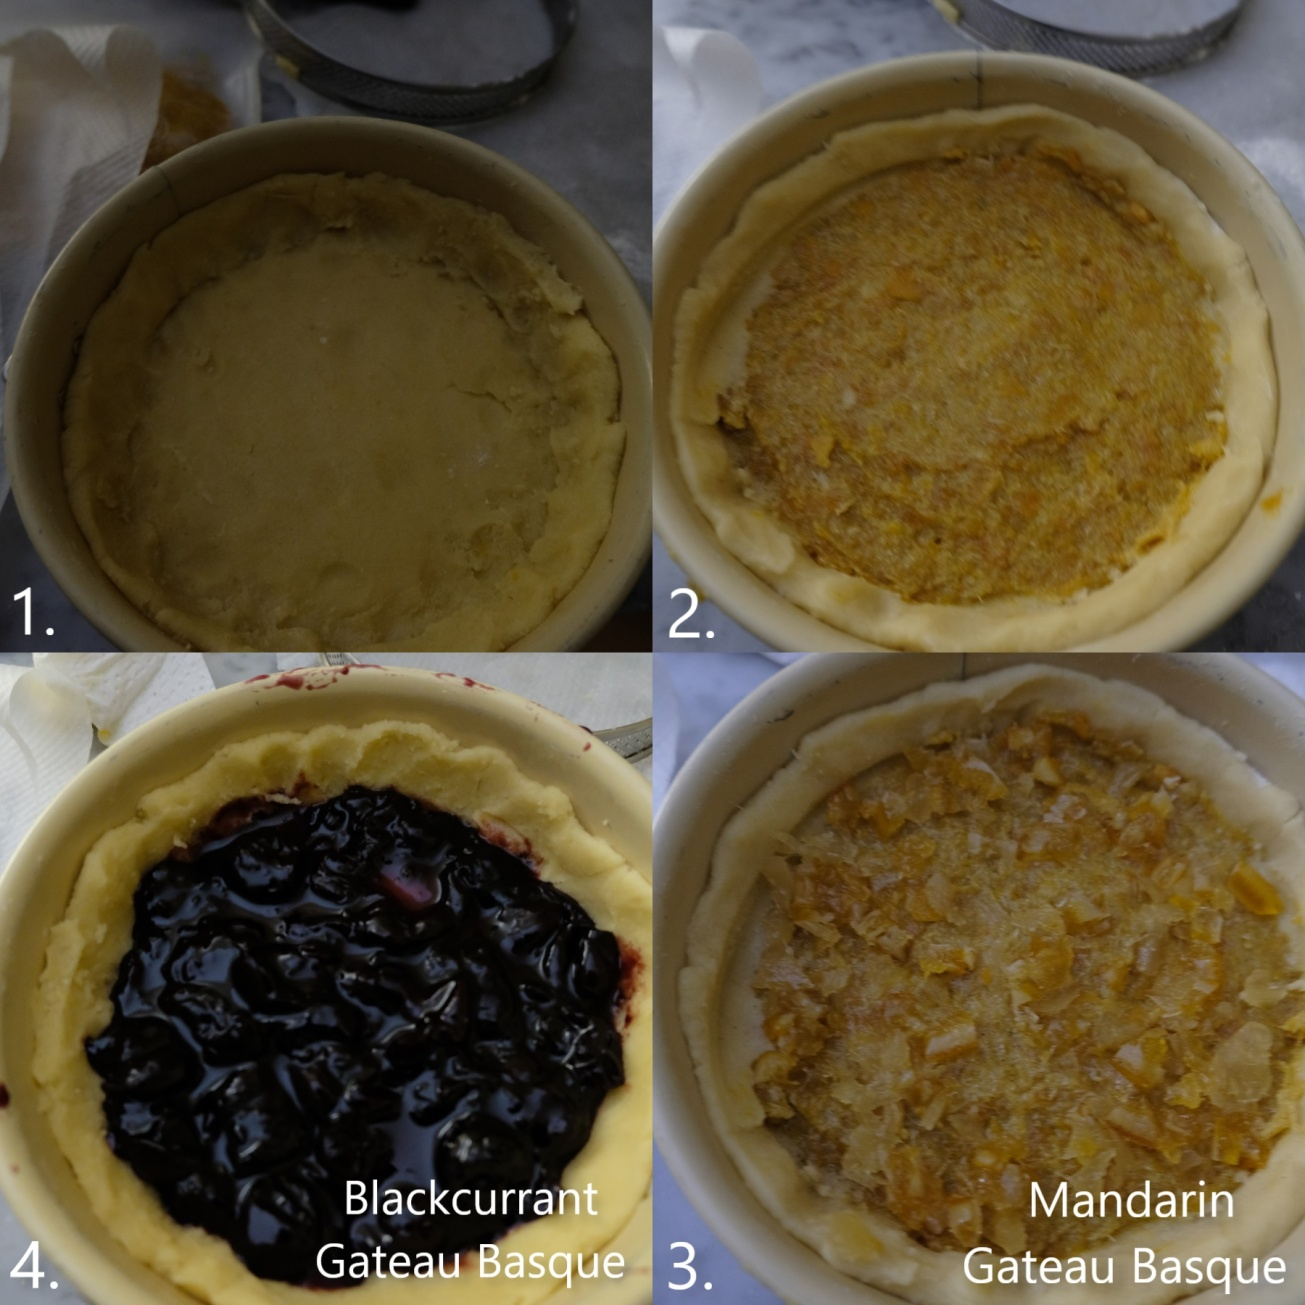 Assembling Gateaux Basques 2 - jam or compote layer